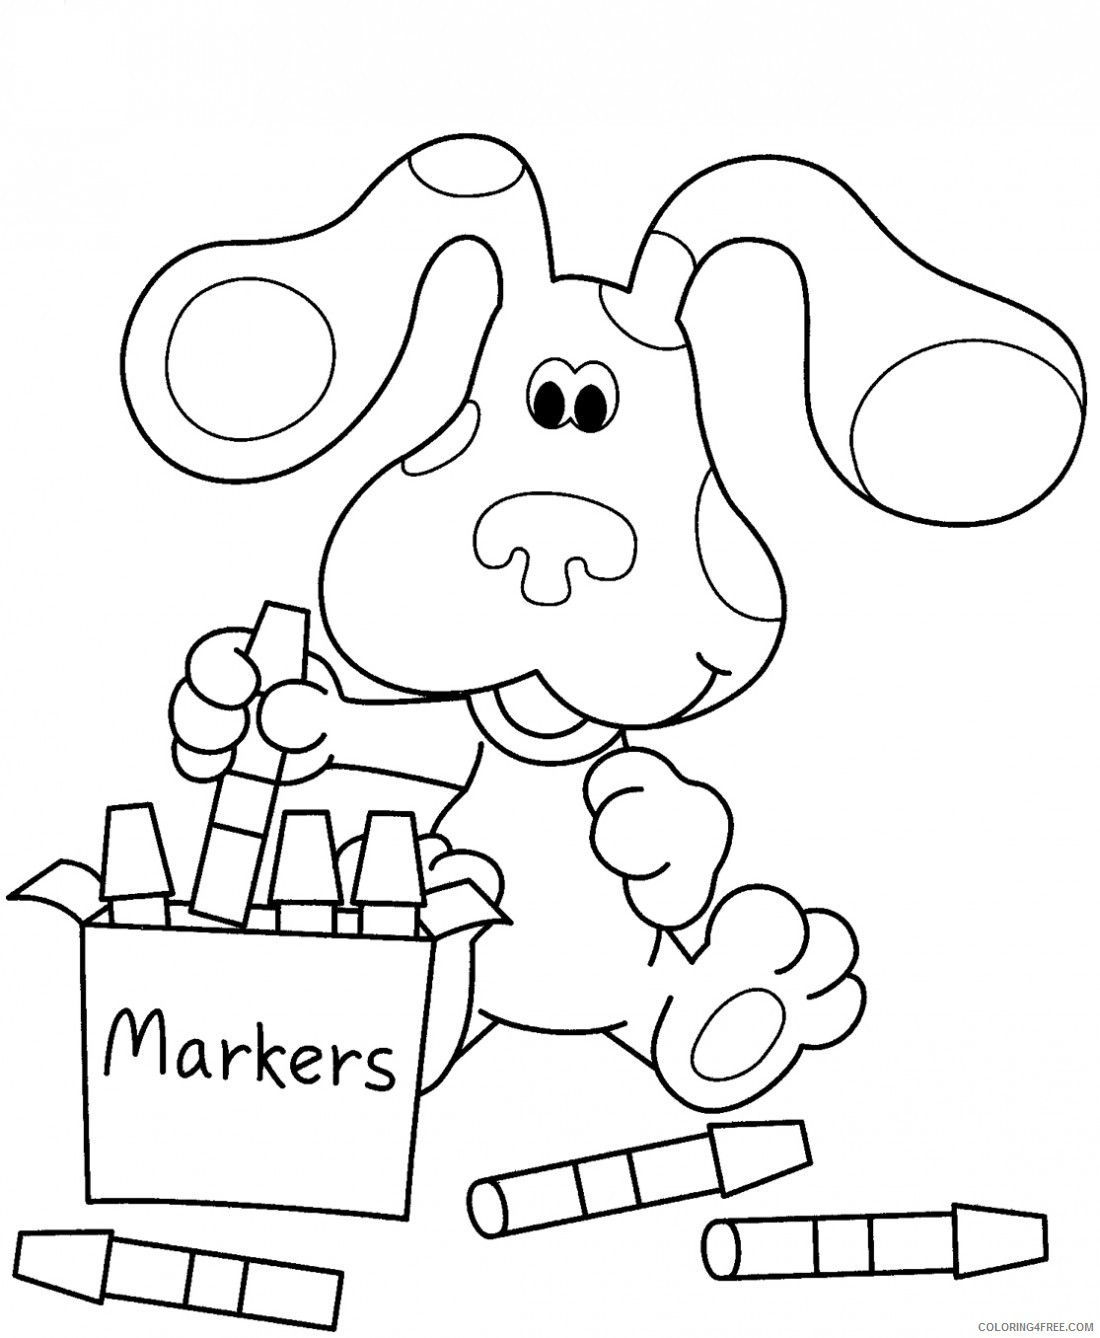 crayon coloring pages blues clues Coloring4free